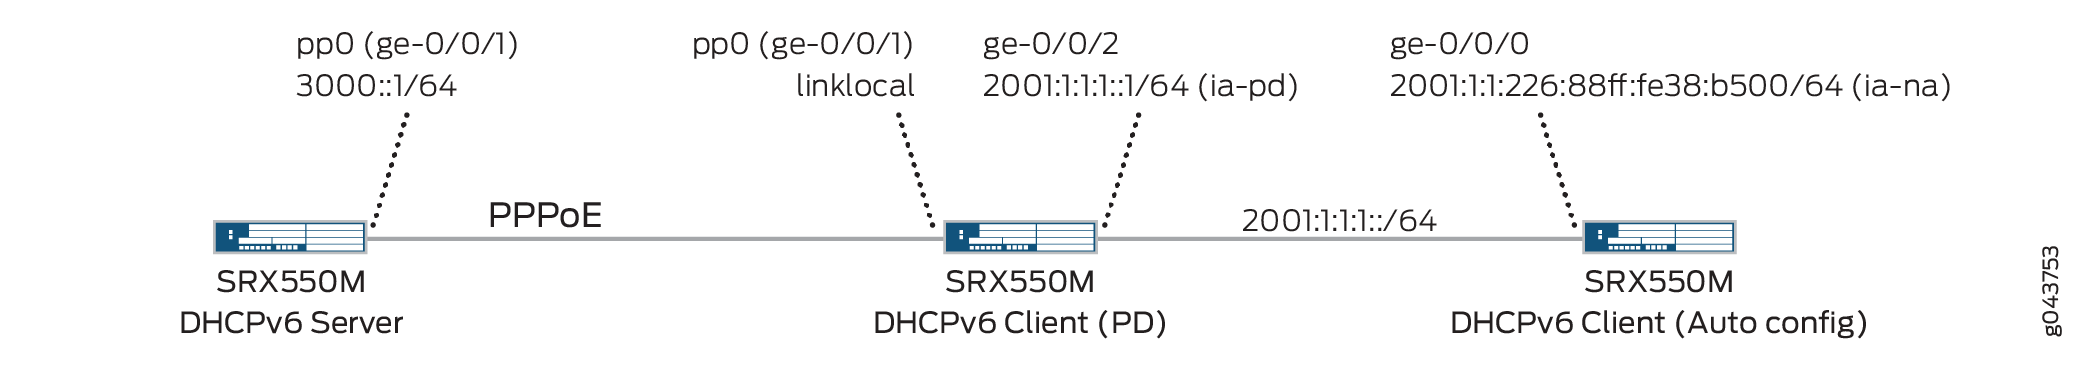 Configuring SRX Series Devices for DHCPv6 PD over PPPoE